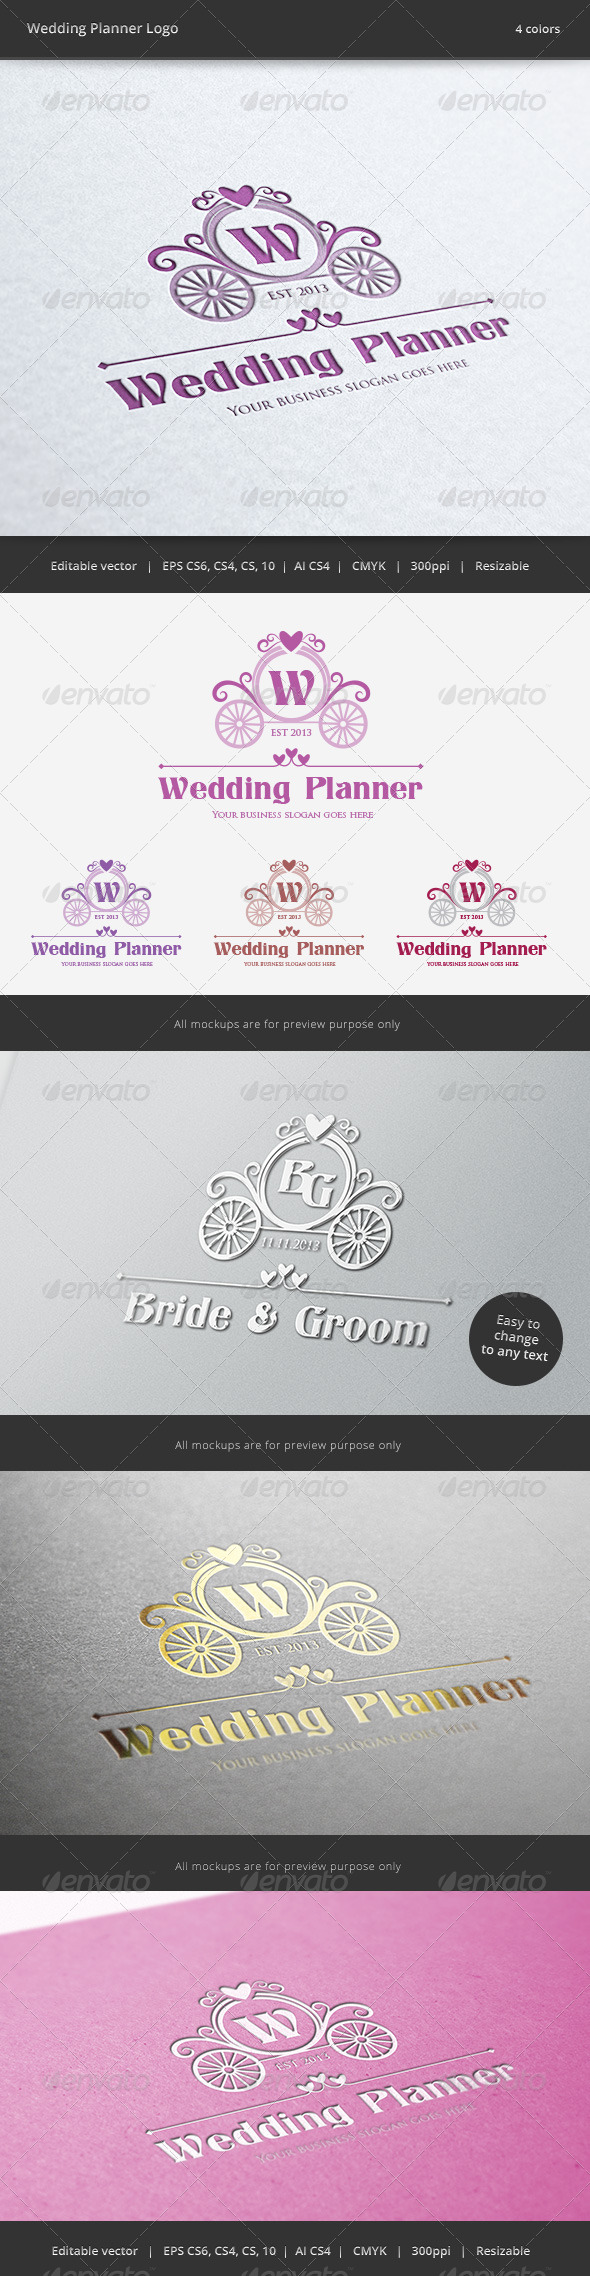 Wedding Planner Letter Crest Logo - Crests Logo Templates